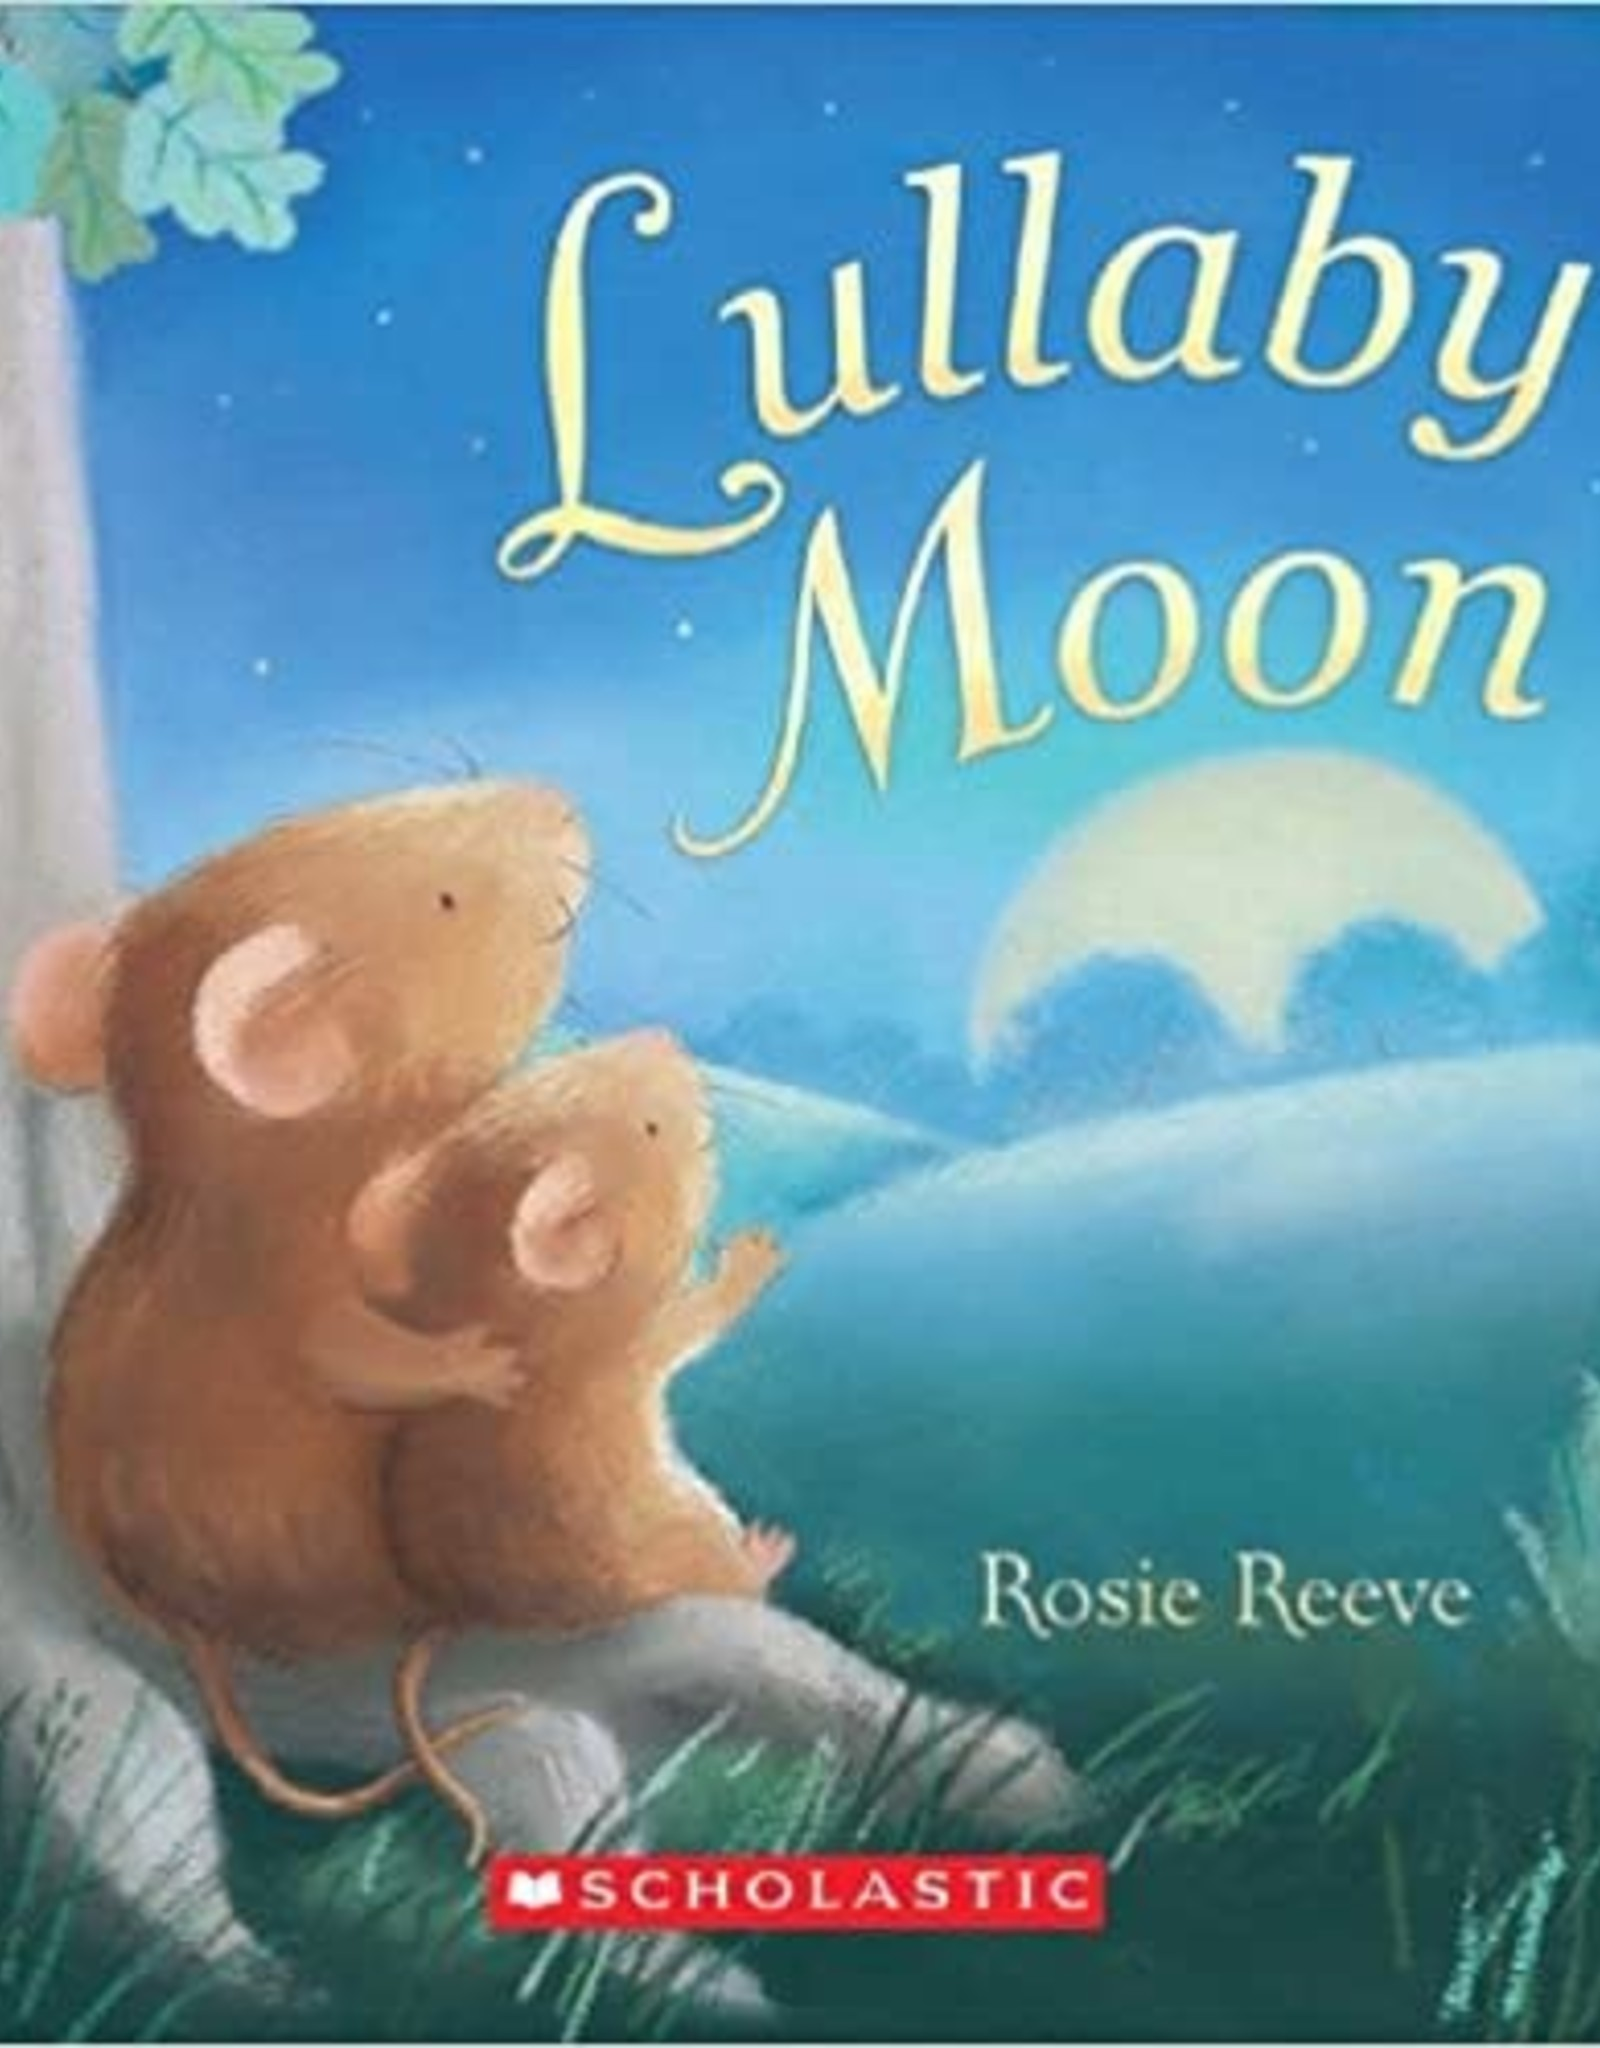 Scholastic Lullaby Moon